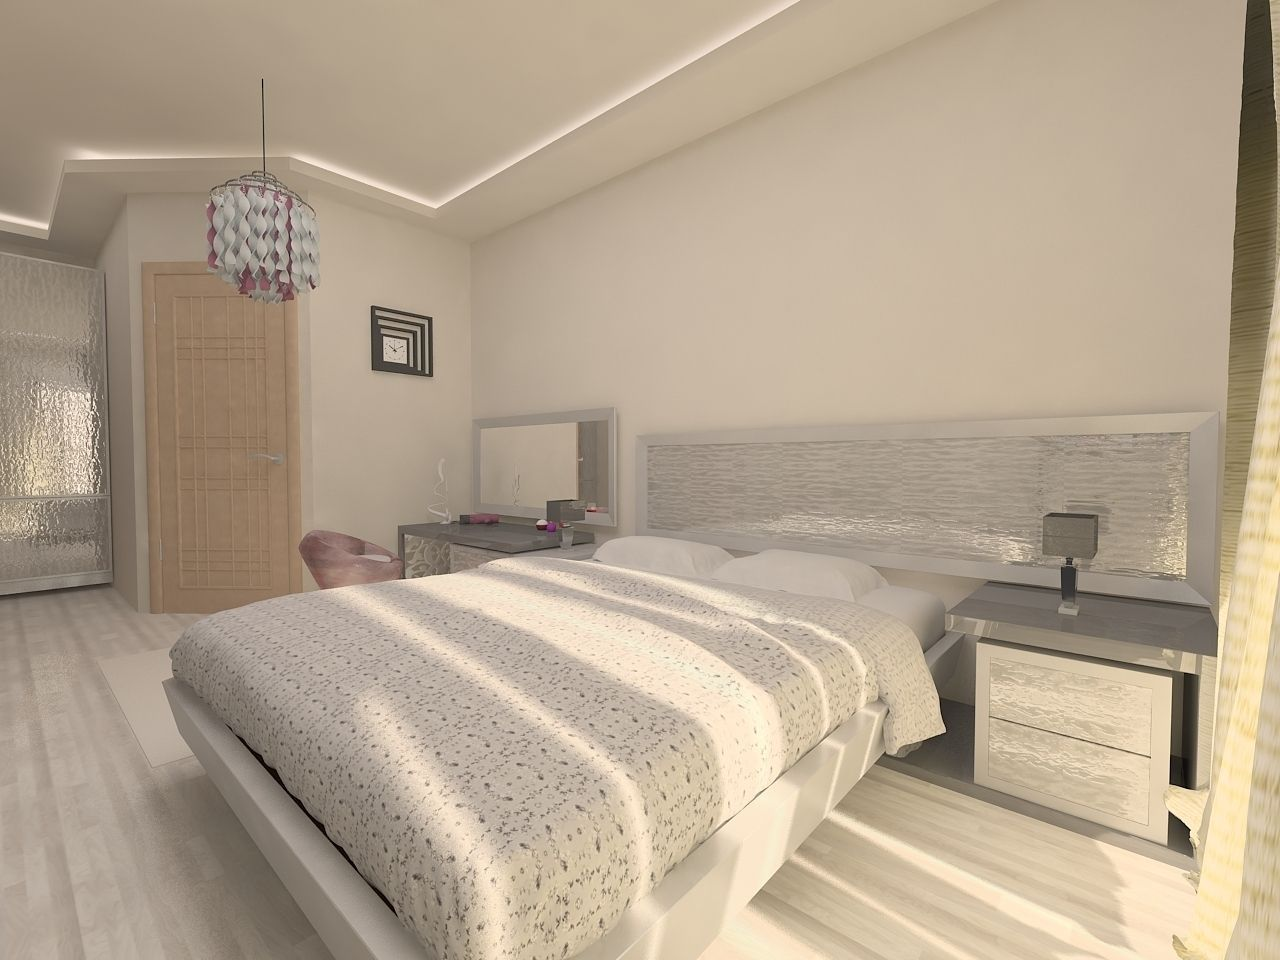 Bedroom design 3d model max for Bedroom designs 3d model